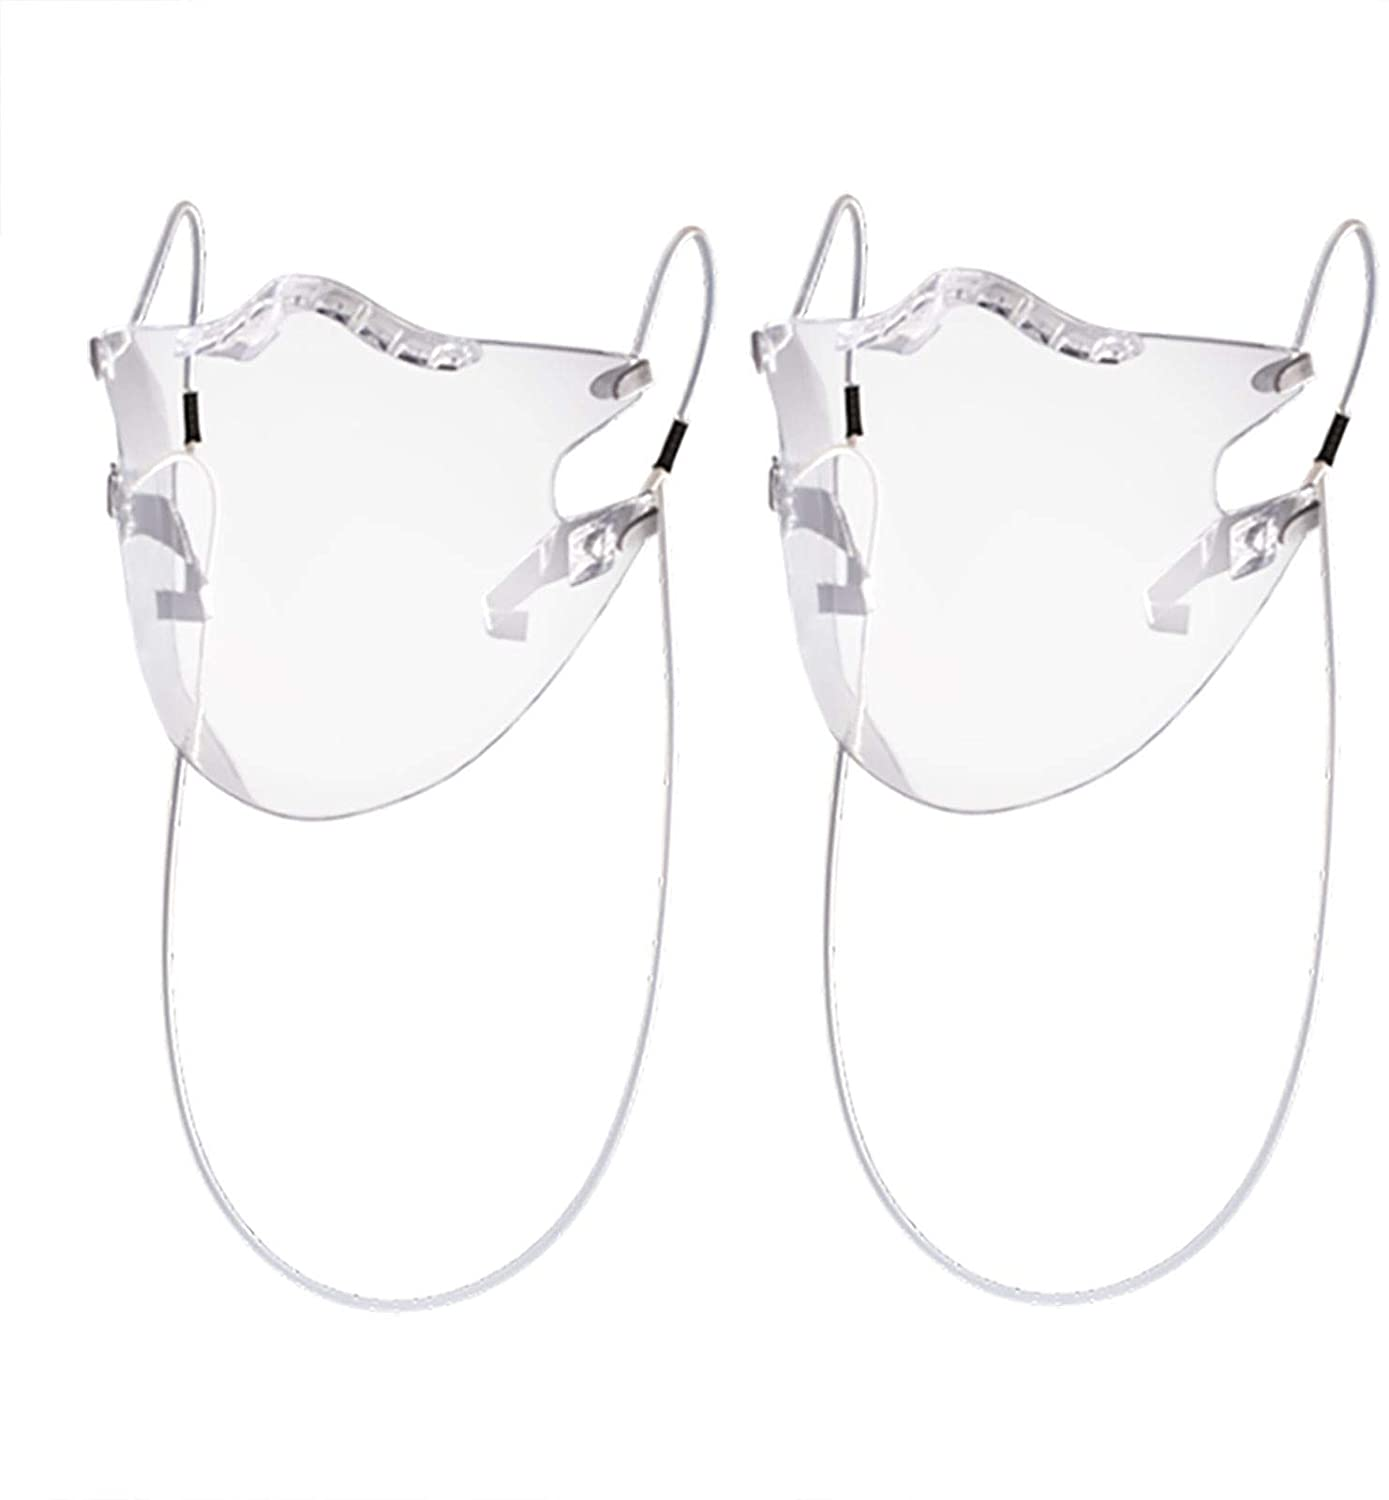 【Ship from US!!!】 Clarity Face_Shield for Adult, Anti-Fog Clarity Face_Masks Reusable Clear Face_Mask Transparent, All Clear Face Bandanas Breathable Comfortable, Visible Expression for Women Men